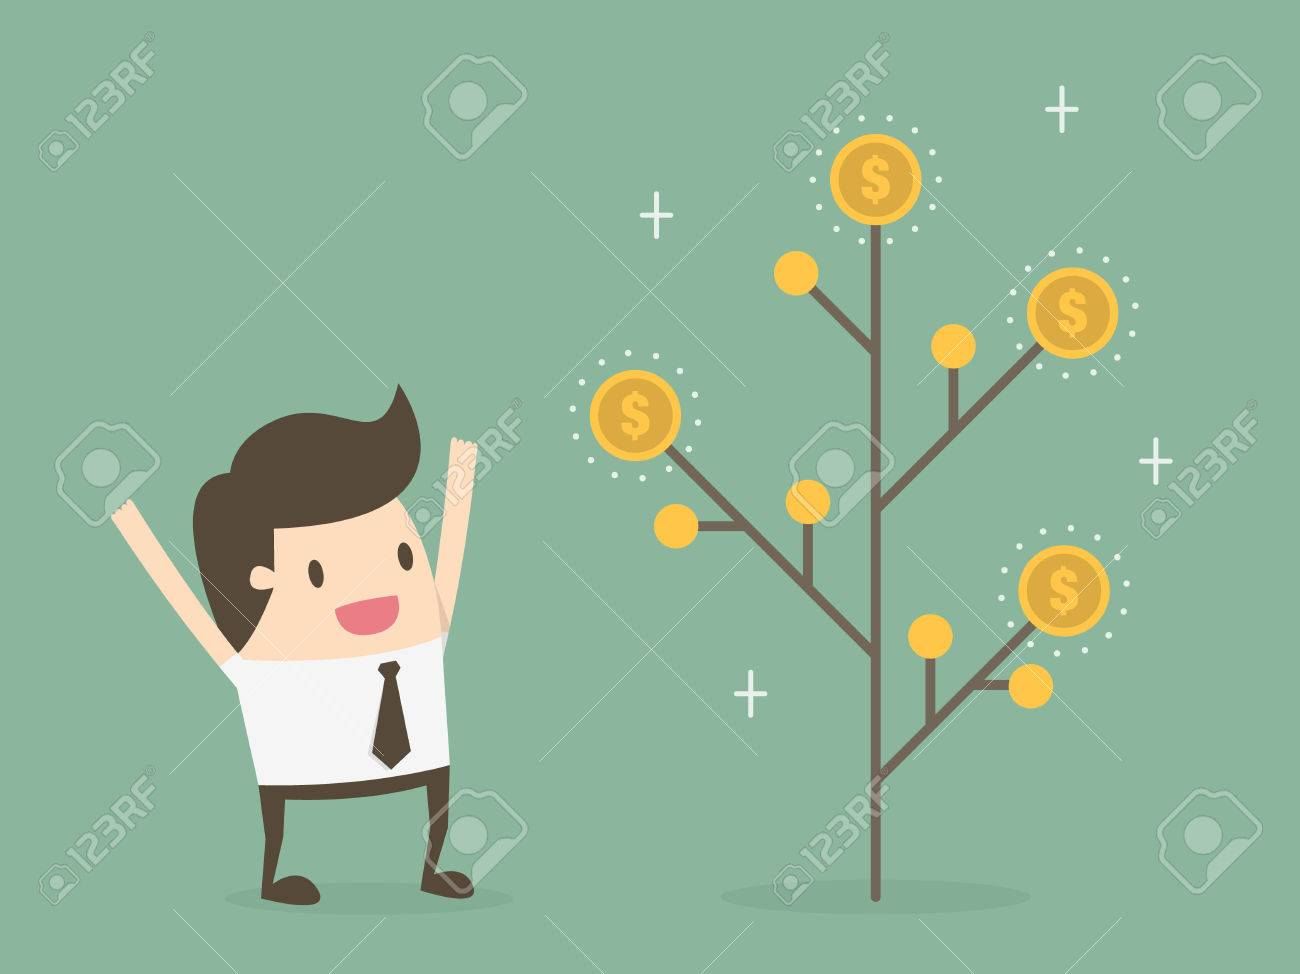 Money plant. Money growth and investment concept. - 54429703